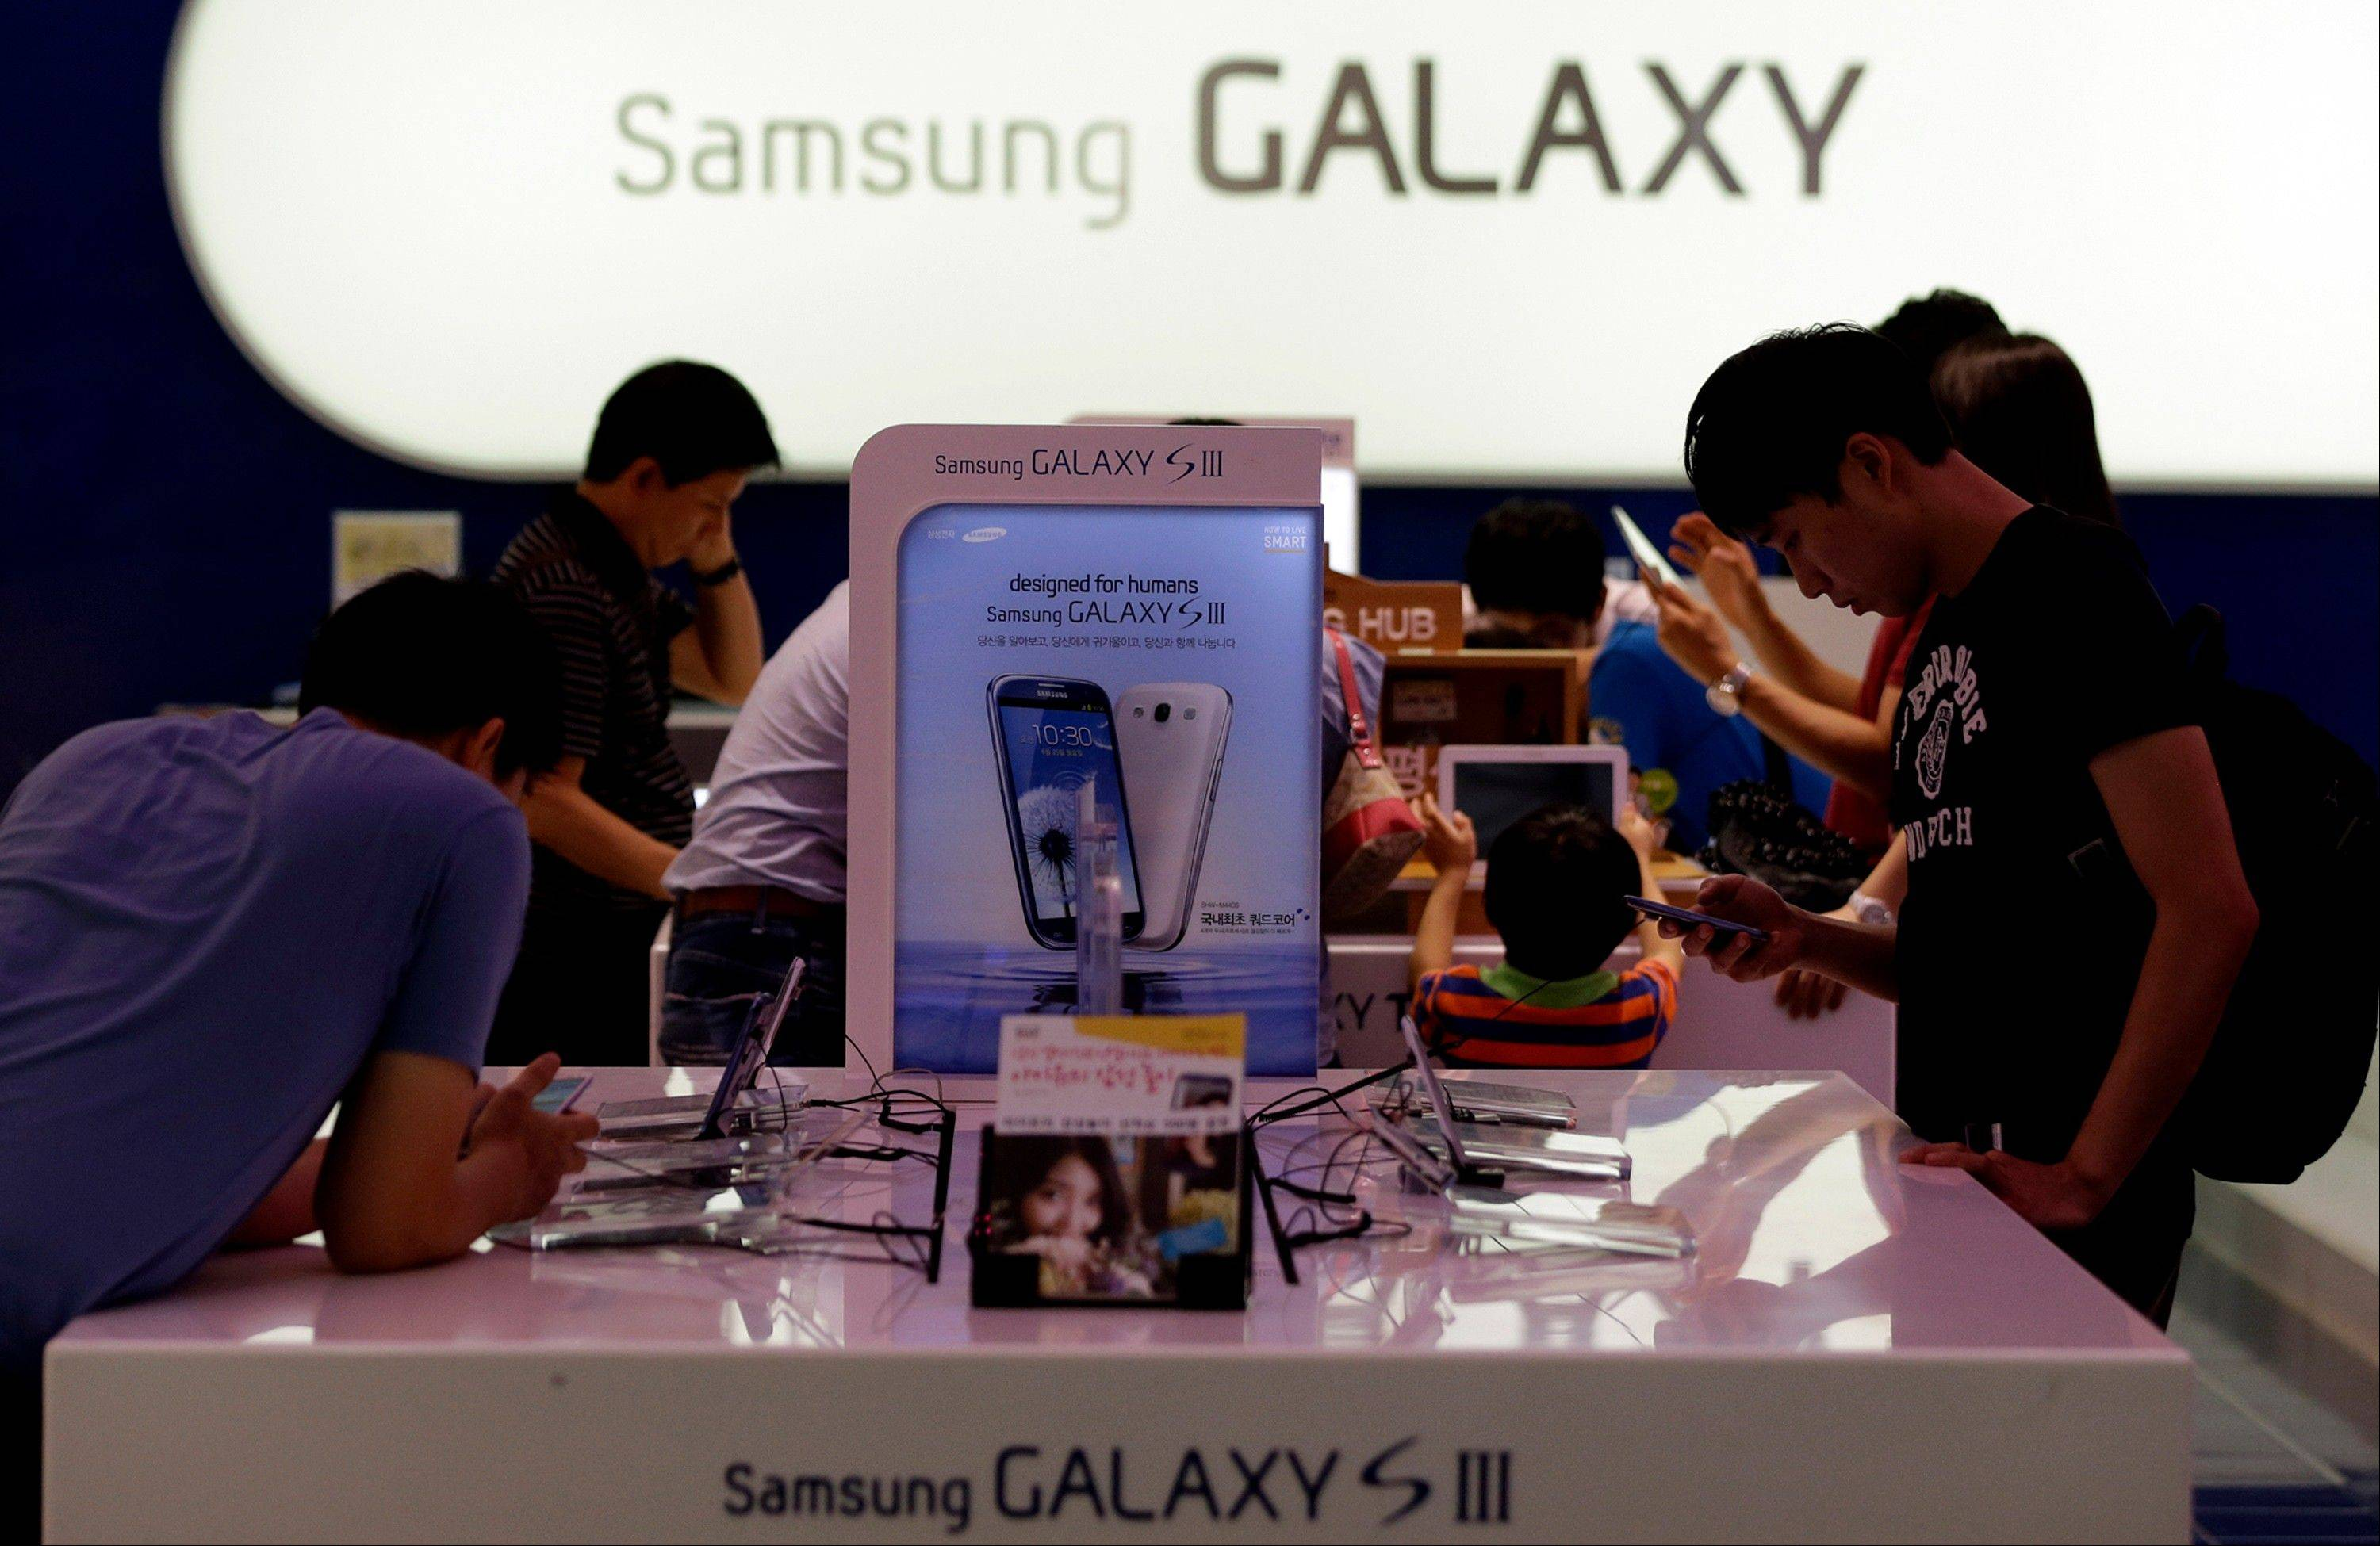 Visitors shop around Samsung's smartphones at a shopping mall in Seoul, South Korea, Saturday, Aug. 25, 2012. The South Korean phone maker won a home court ruling Friday in its global patent battle against Apple and its popular iPhone and iPad devices. The ruling came hours before Apple prevailed in a similar case in the U.S. Judges in Seoul said Samsung Electronics Co. didn't copy the look and feel of the iPhone and ruled that Apple infringed on Samsung's wireless technology.